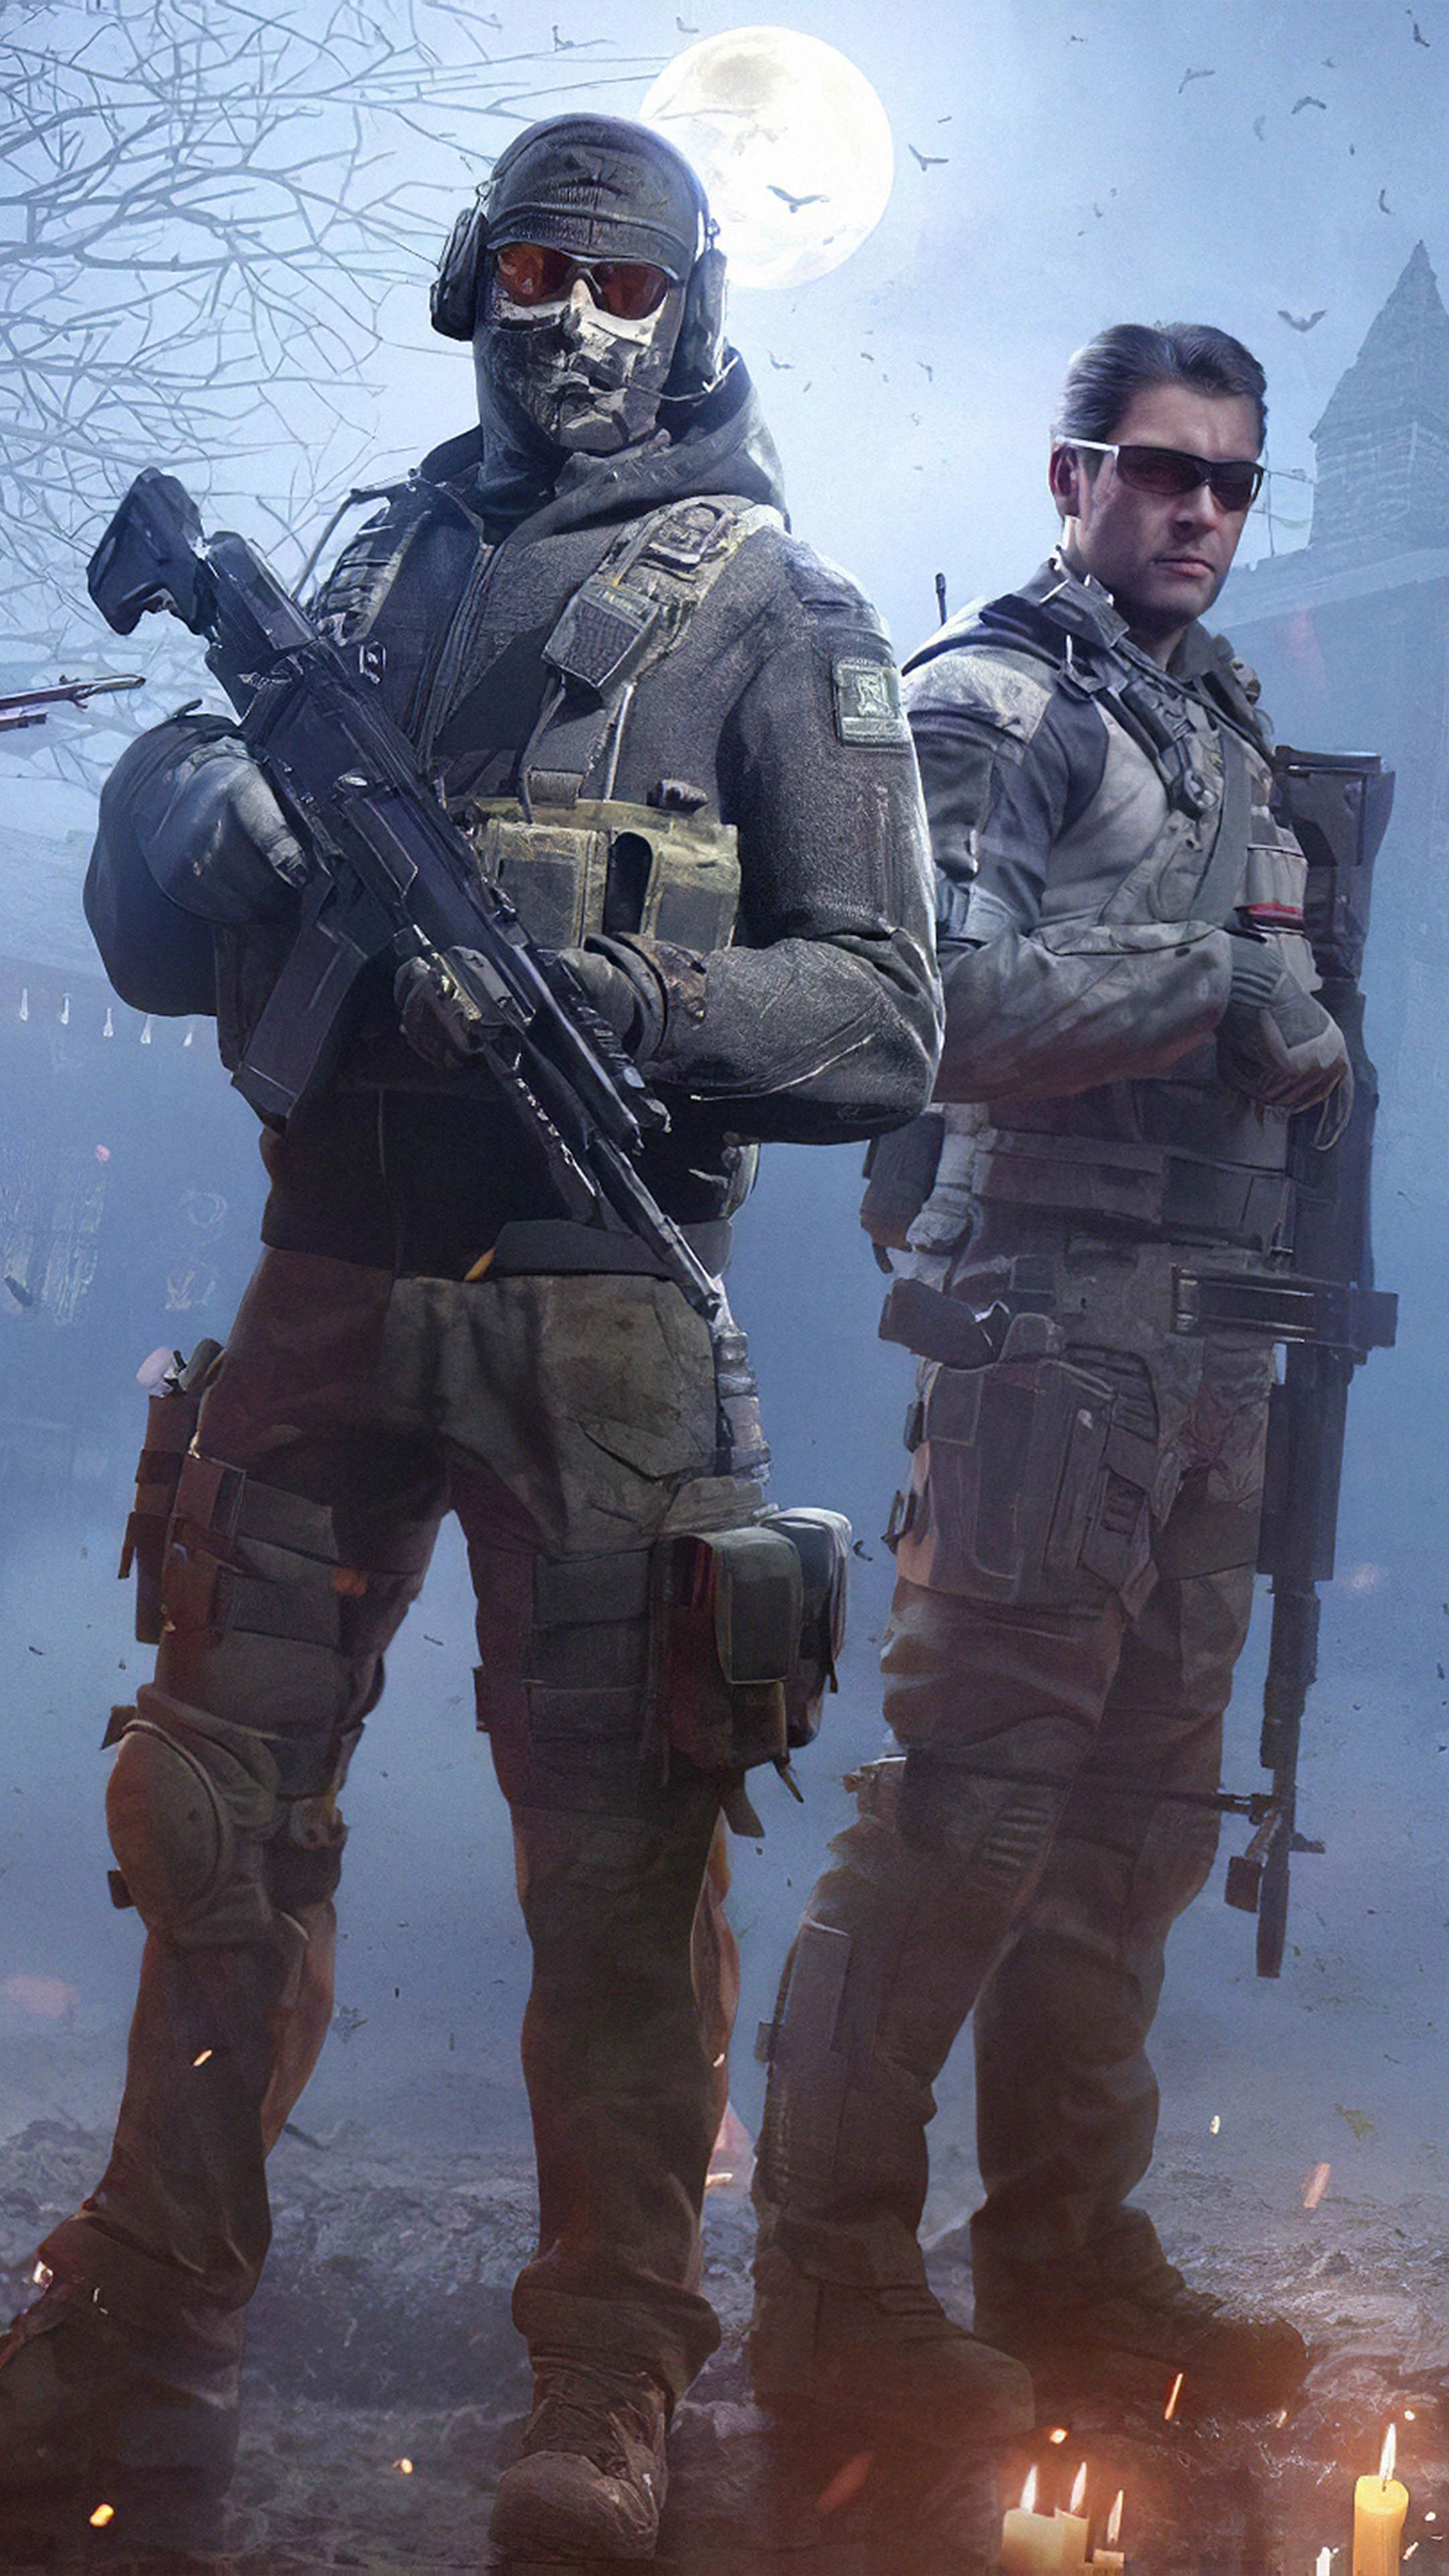 Squad Call Of Duty Mobile 4k Ultra Hd Mobile Wallpaper In